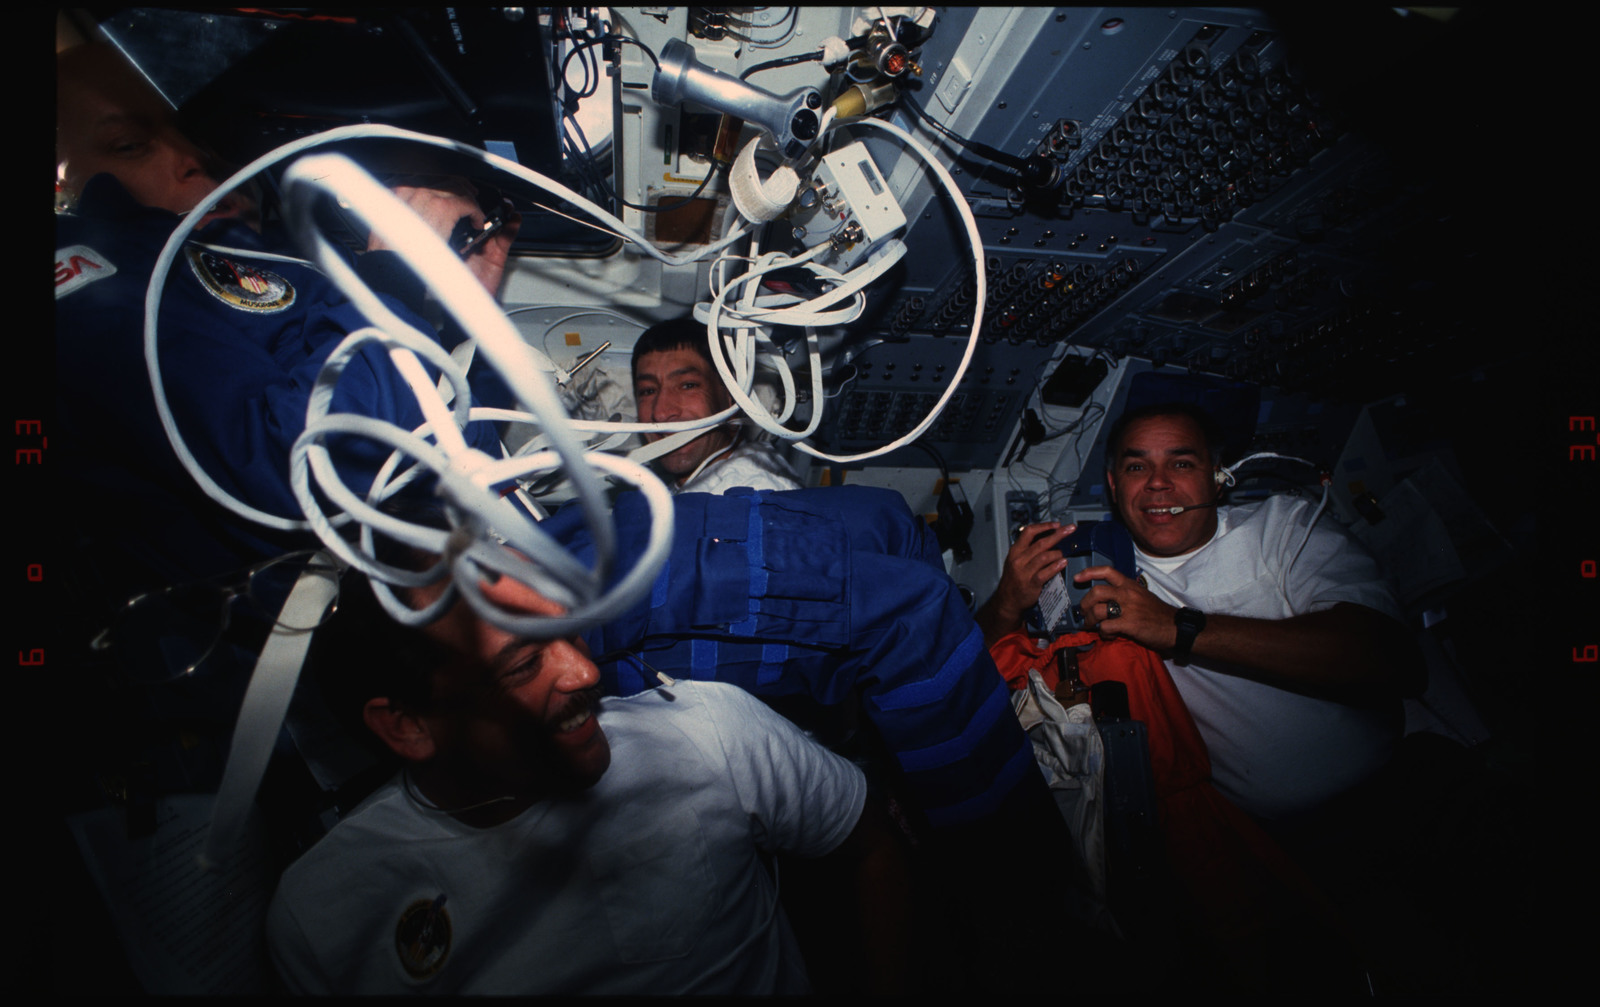 STS044-16-025 - STS-044 - STS-44 Musgrave, Gregory, Hennen and Runco pose on OV-104's flight deck